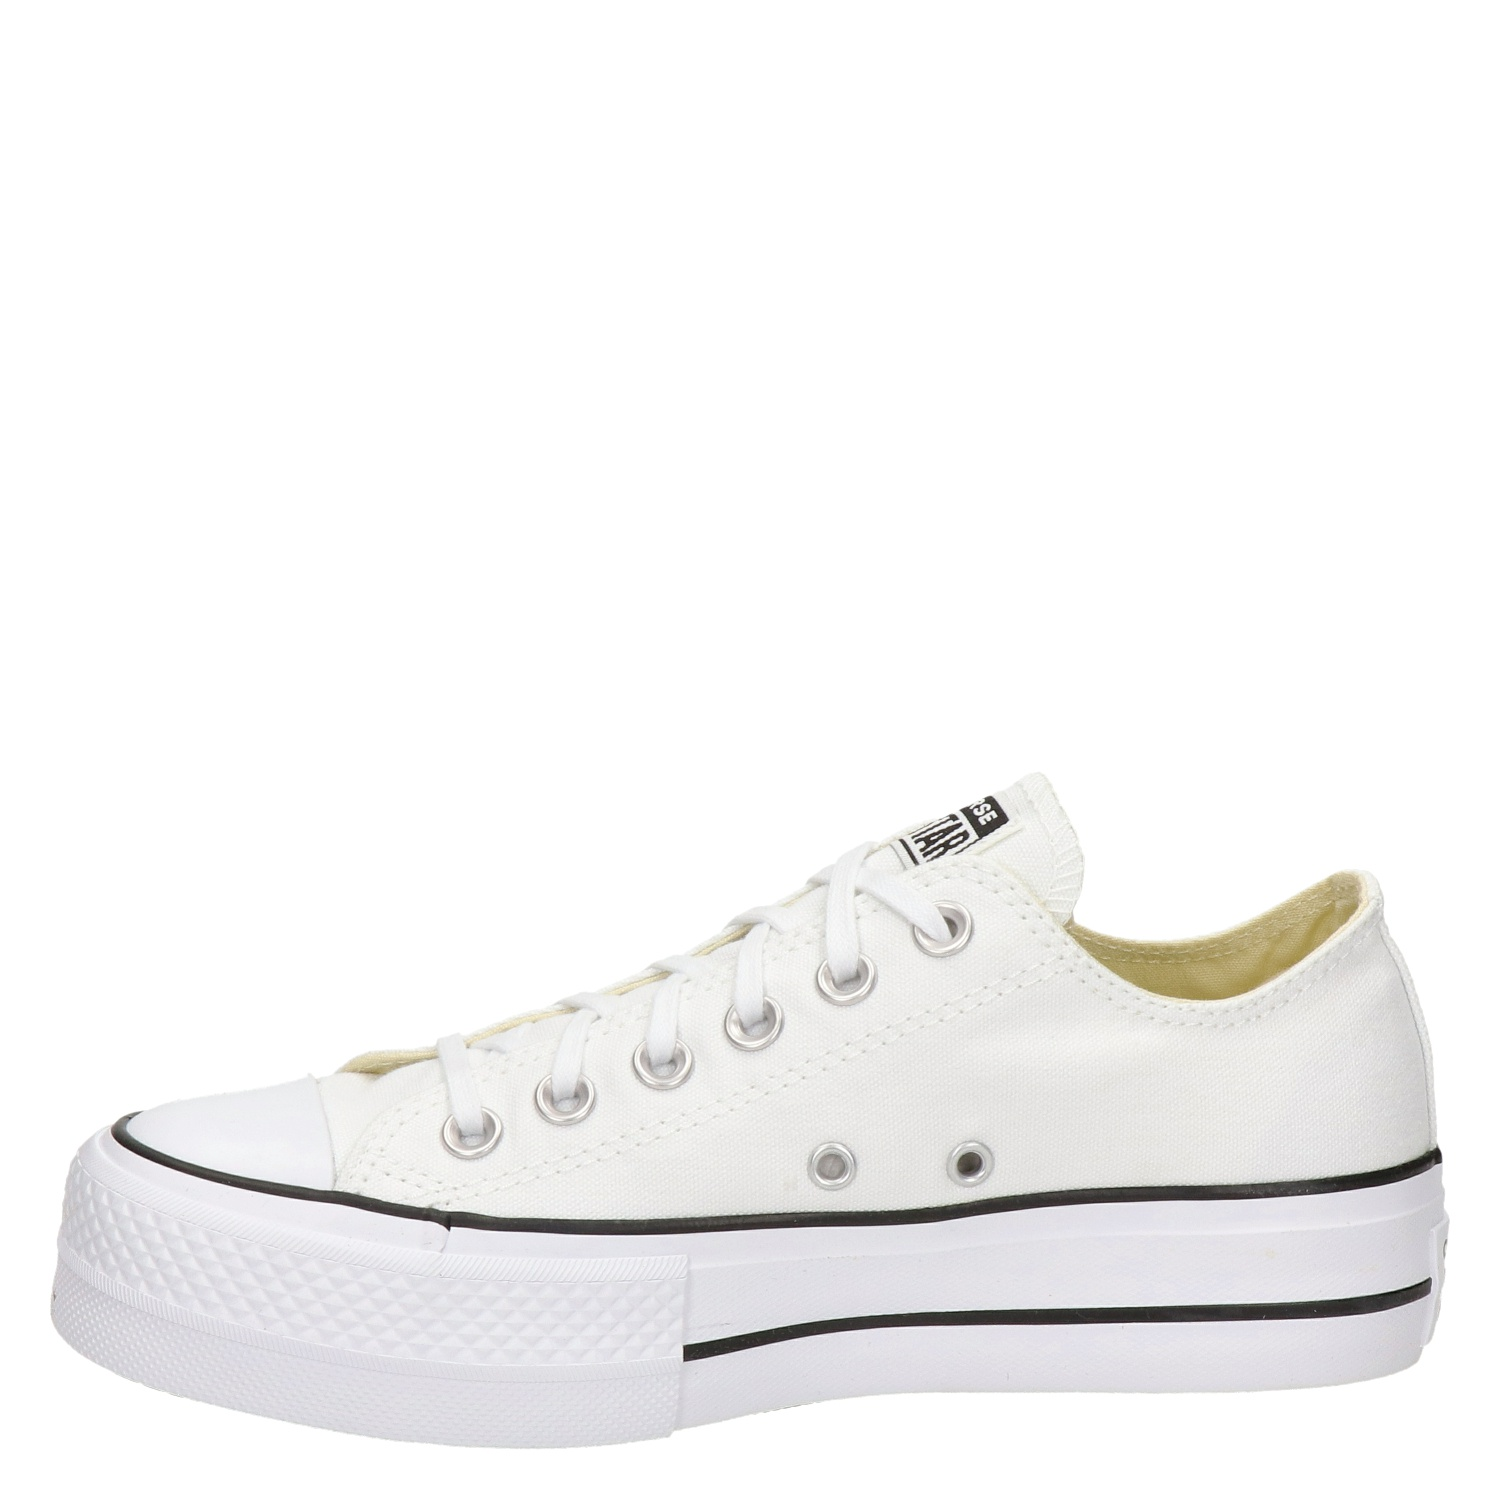 1a4275111a0 Converse Chuck Taylor All Star Lift dames platform sneakers wit